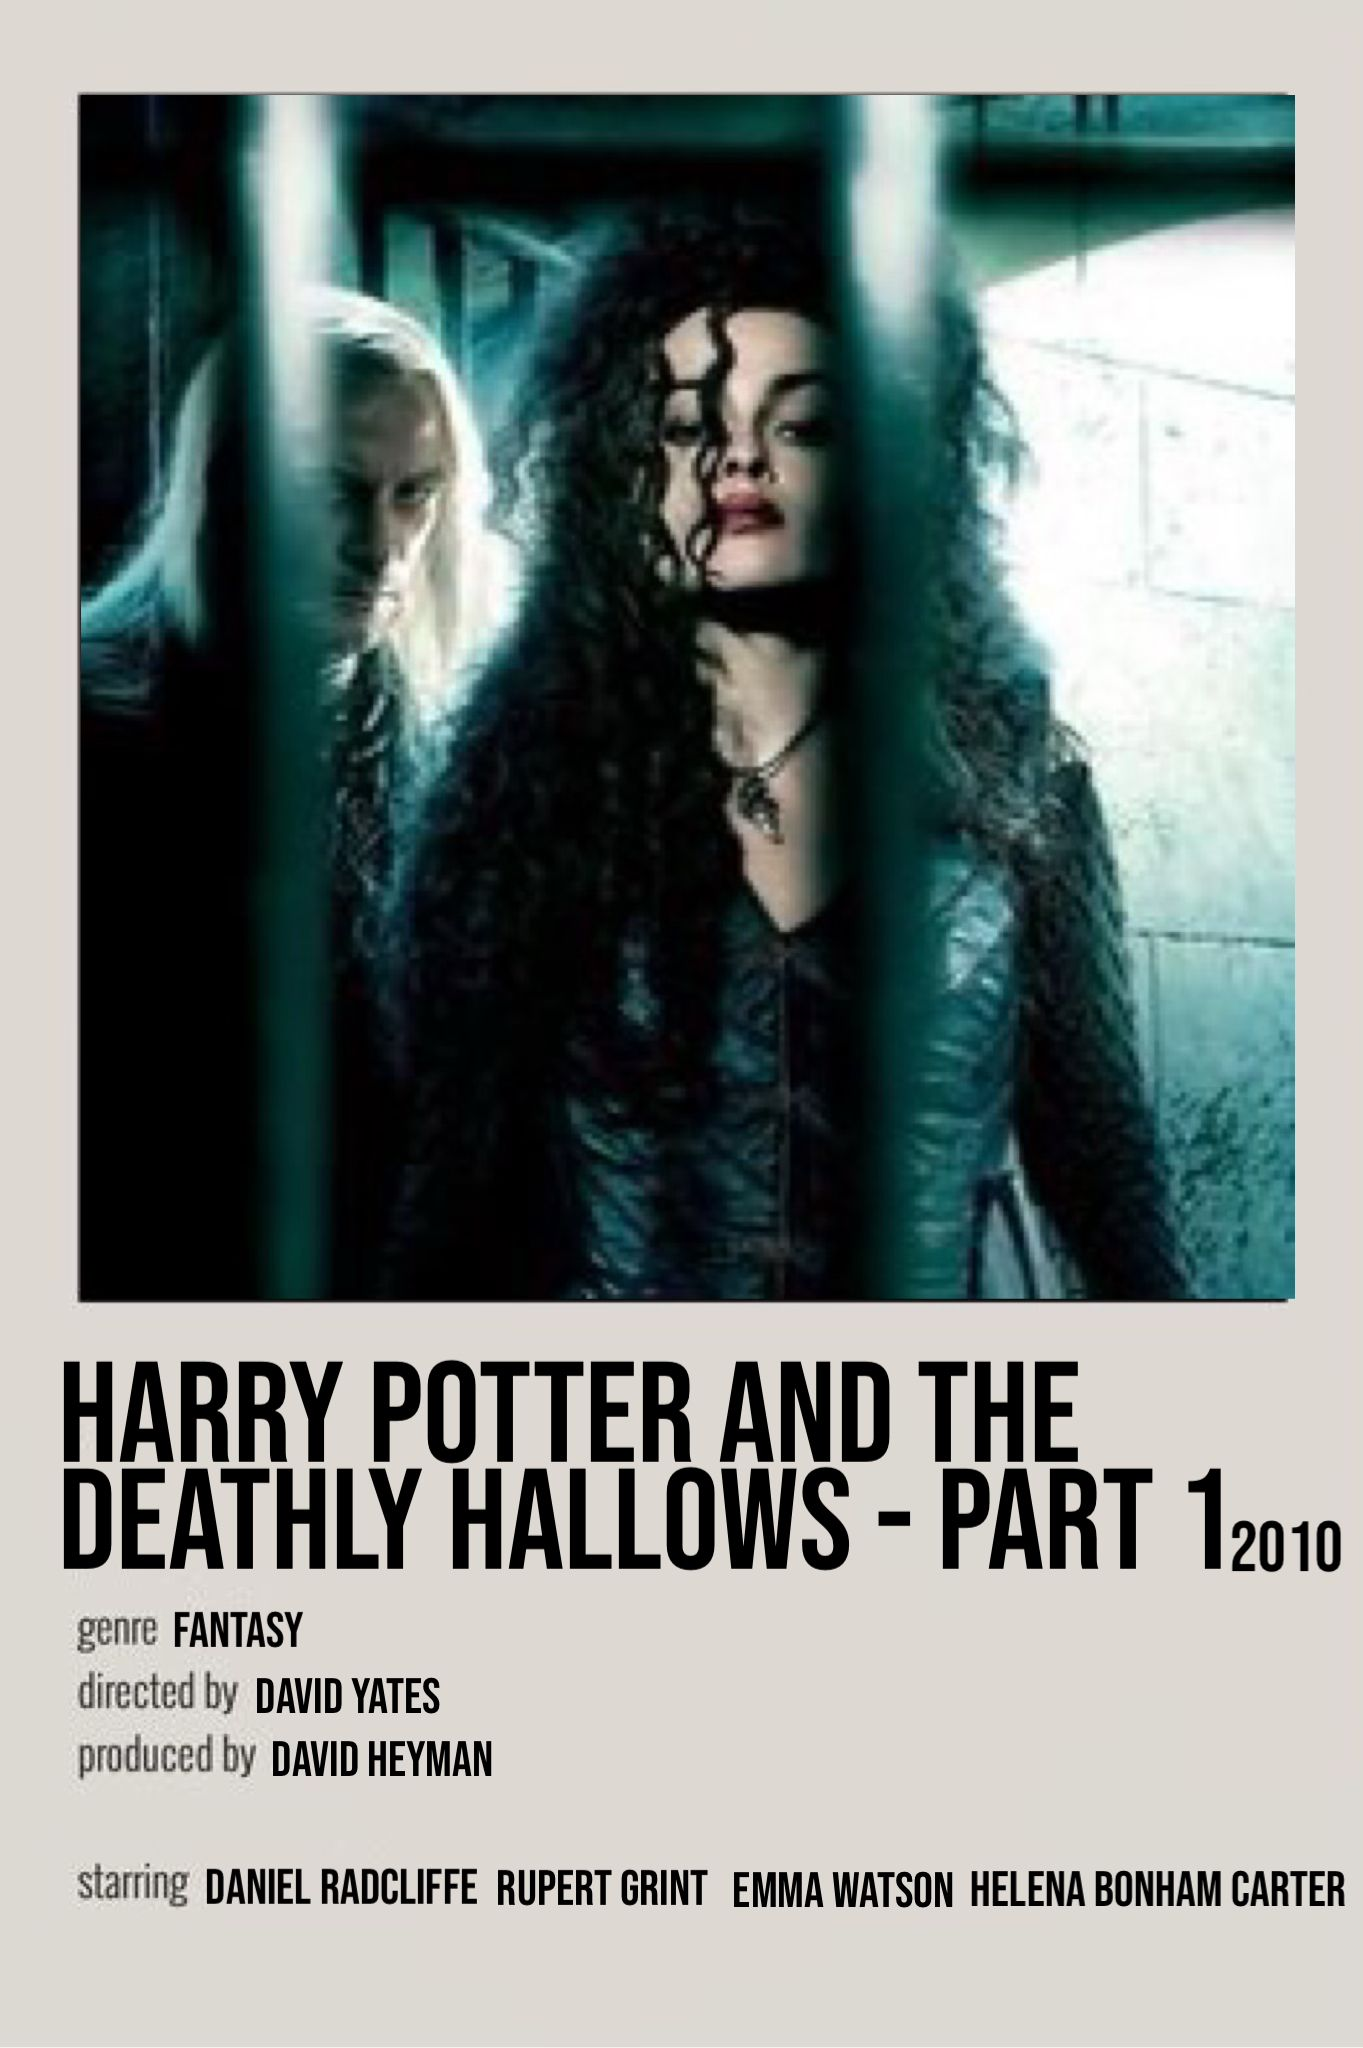 harry poteer and the deathly hallows - part 1 film poster